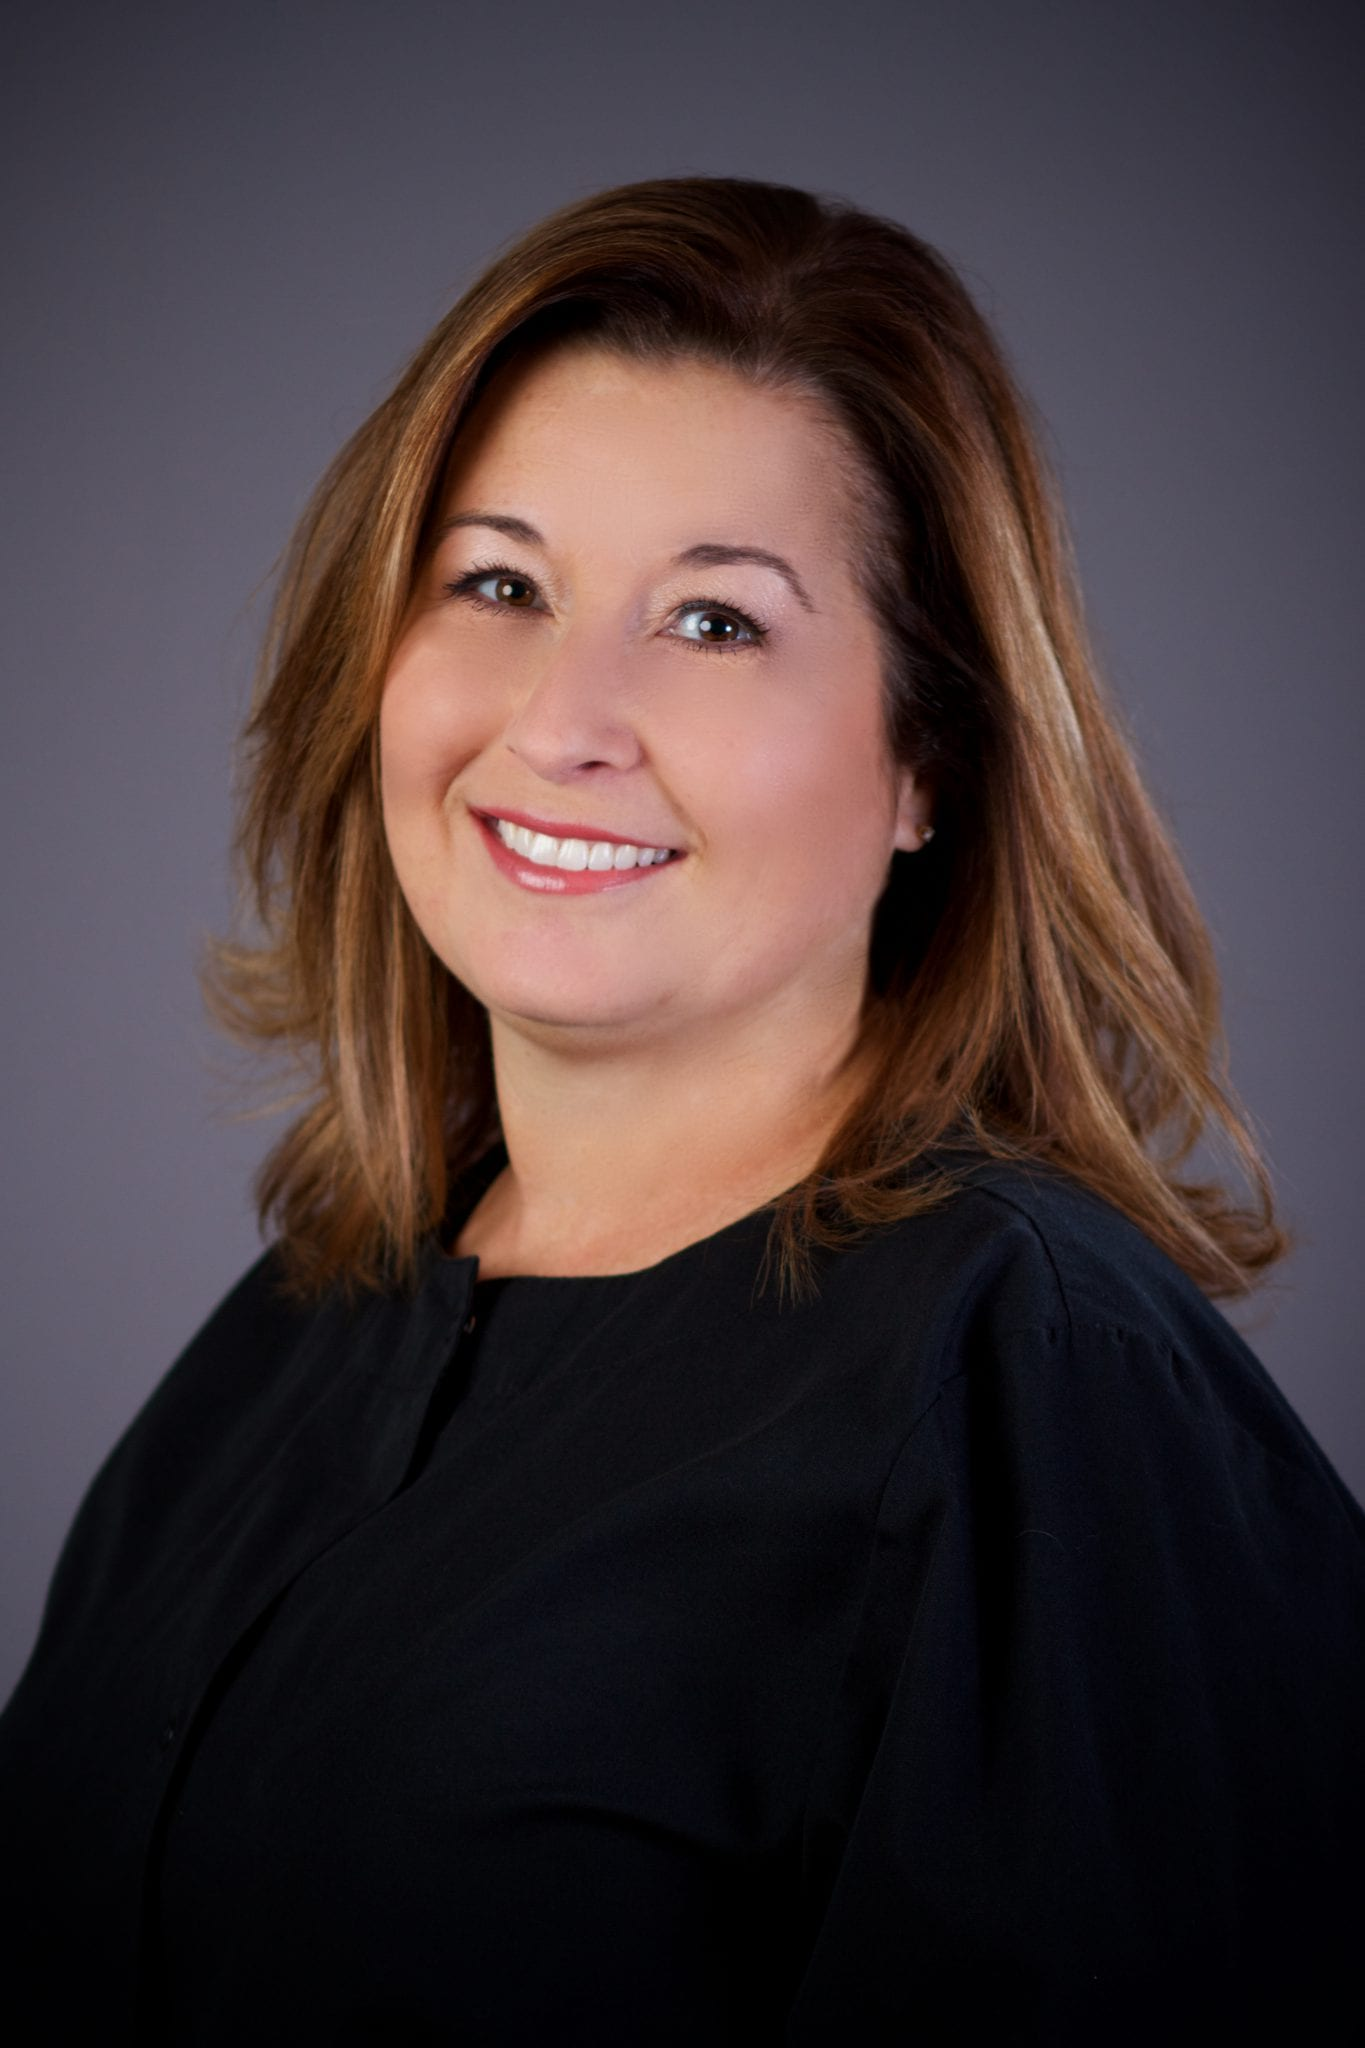 Jennifer who is a Hygienist at Birdwell and Guffey Family Dentistry in South Knoxville